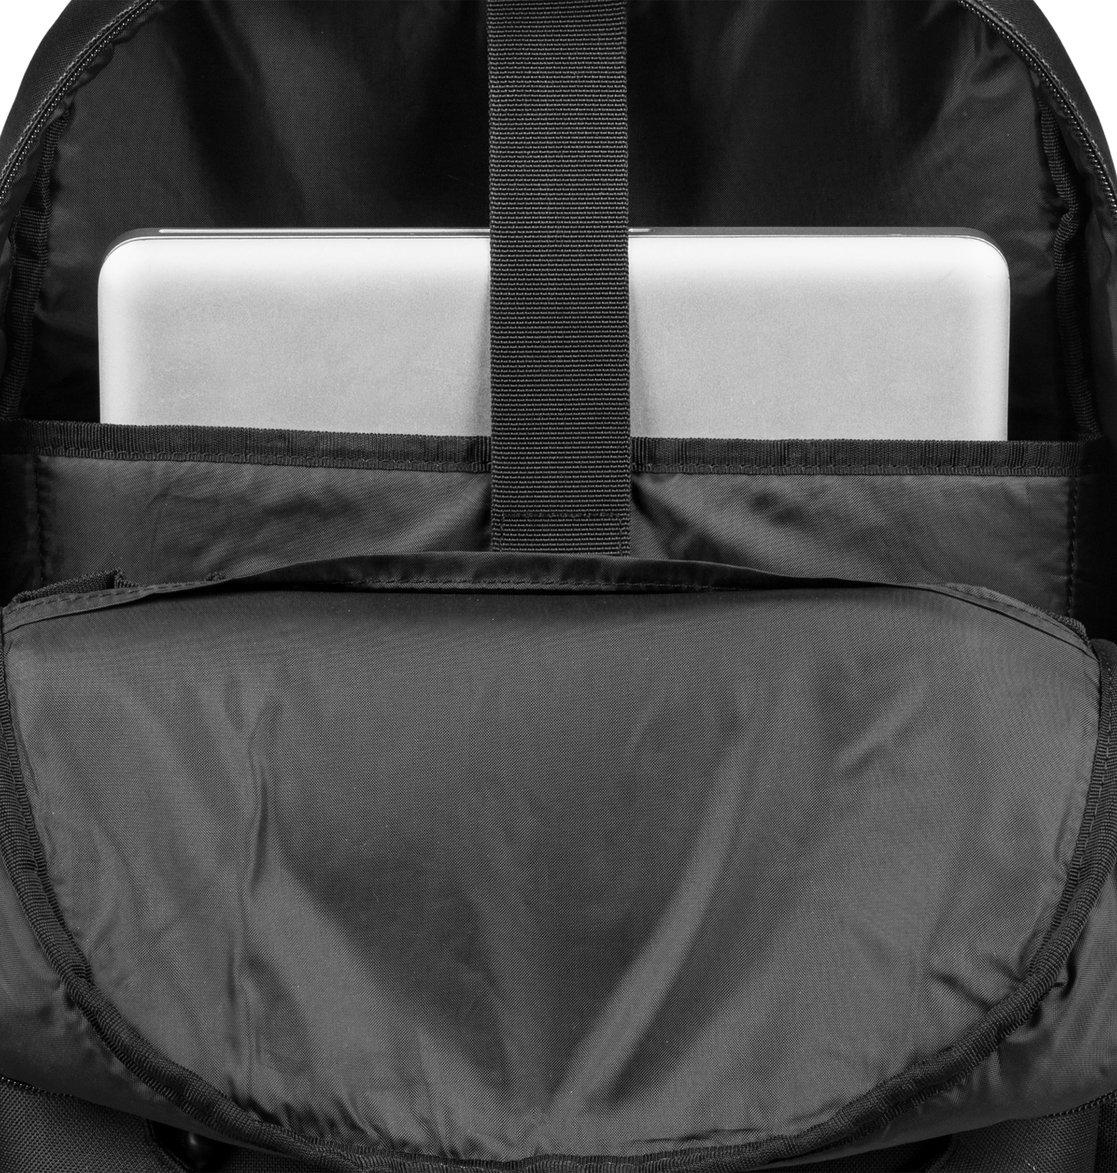 75ecccfcbf 4 Chalked Up 28L - Grand sac à dos Noir EDYBP03173 DC Shoes